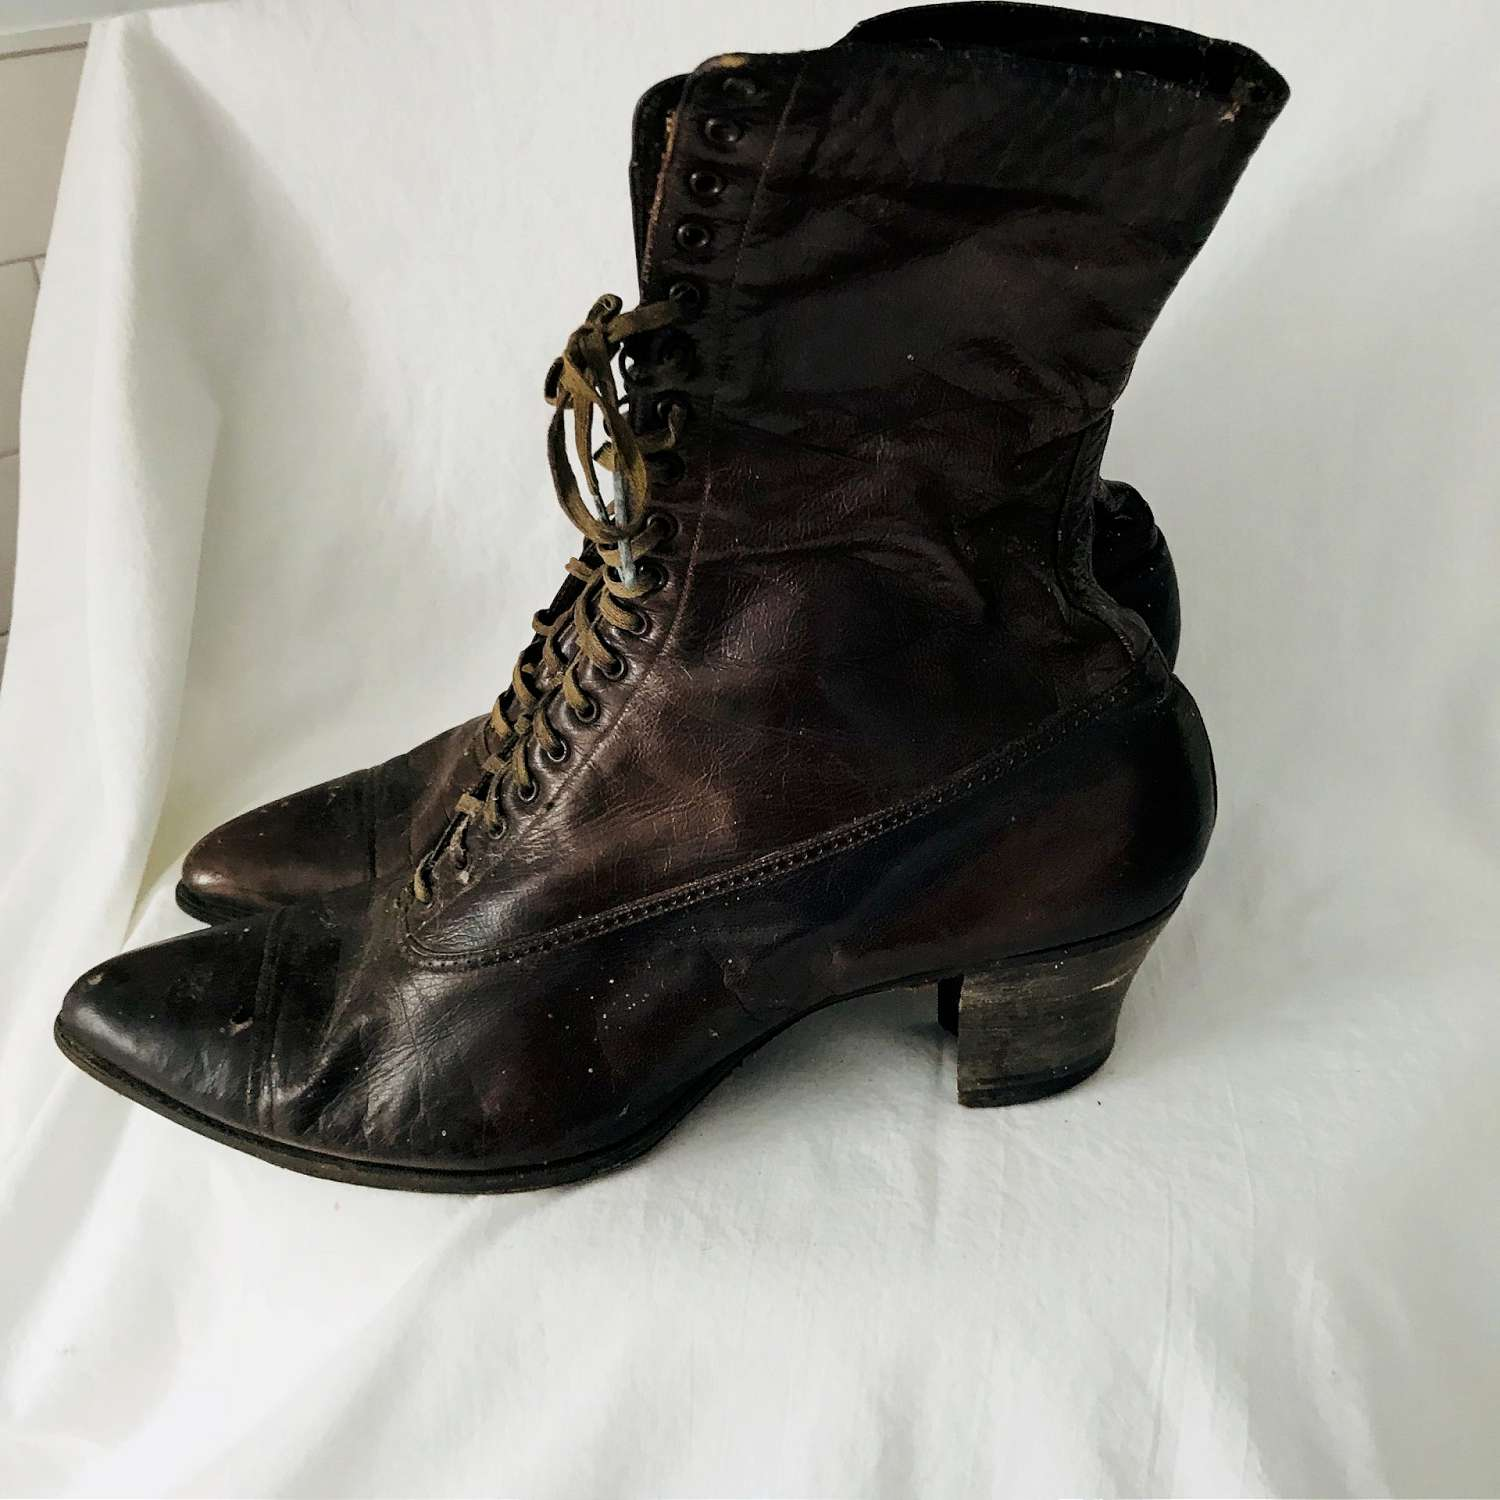 Antique late 1800's Womens lace up